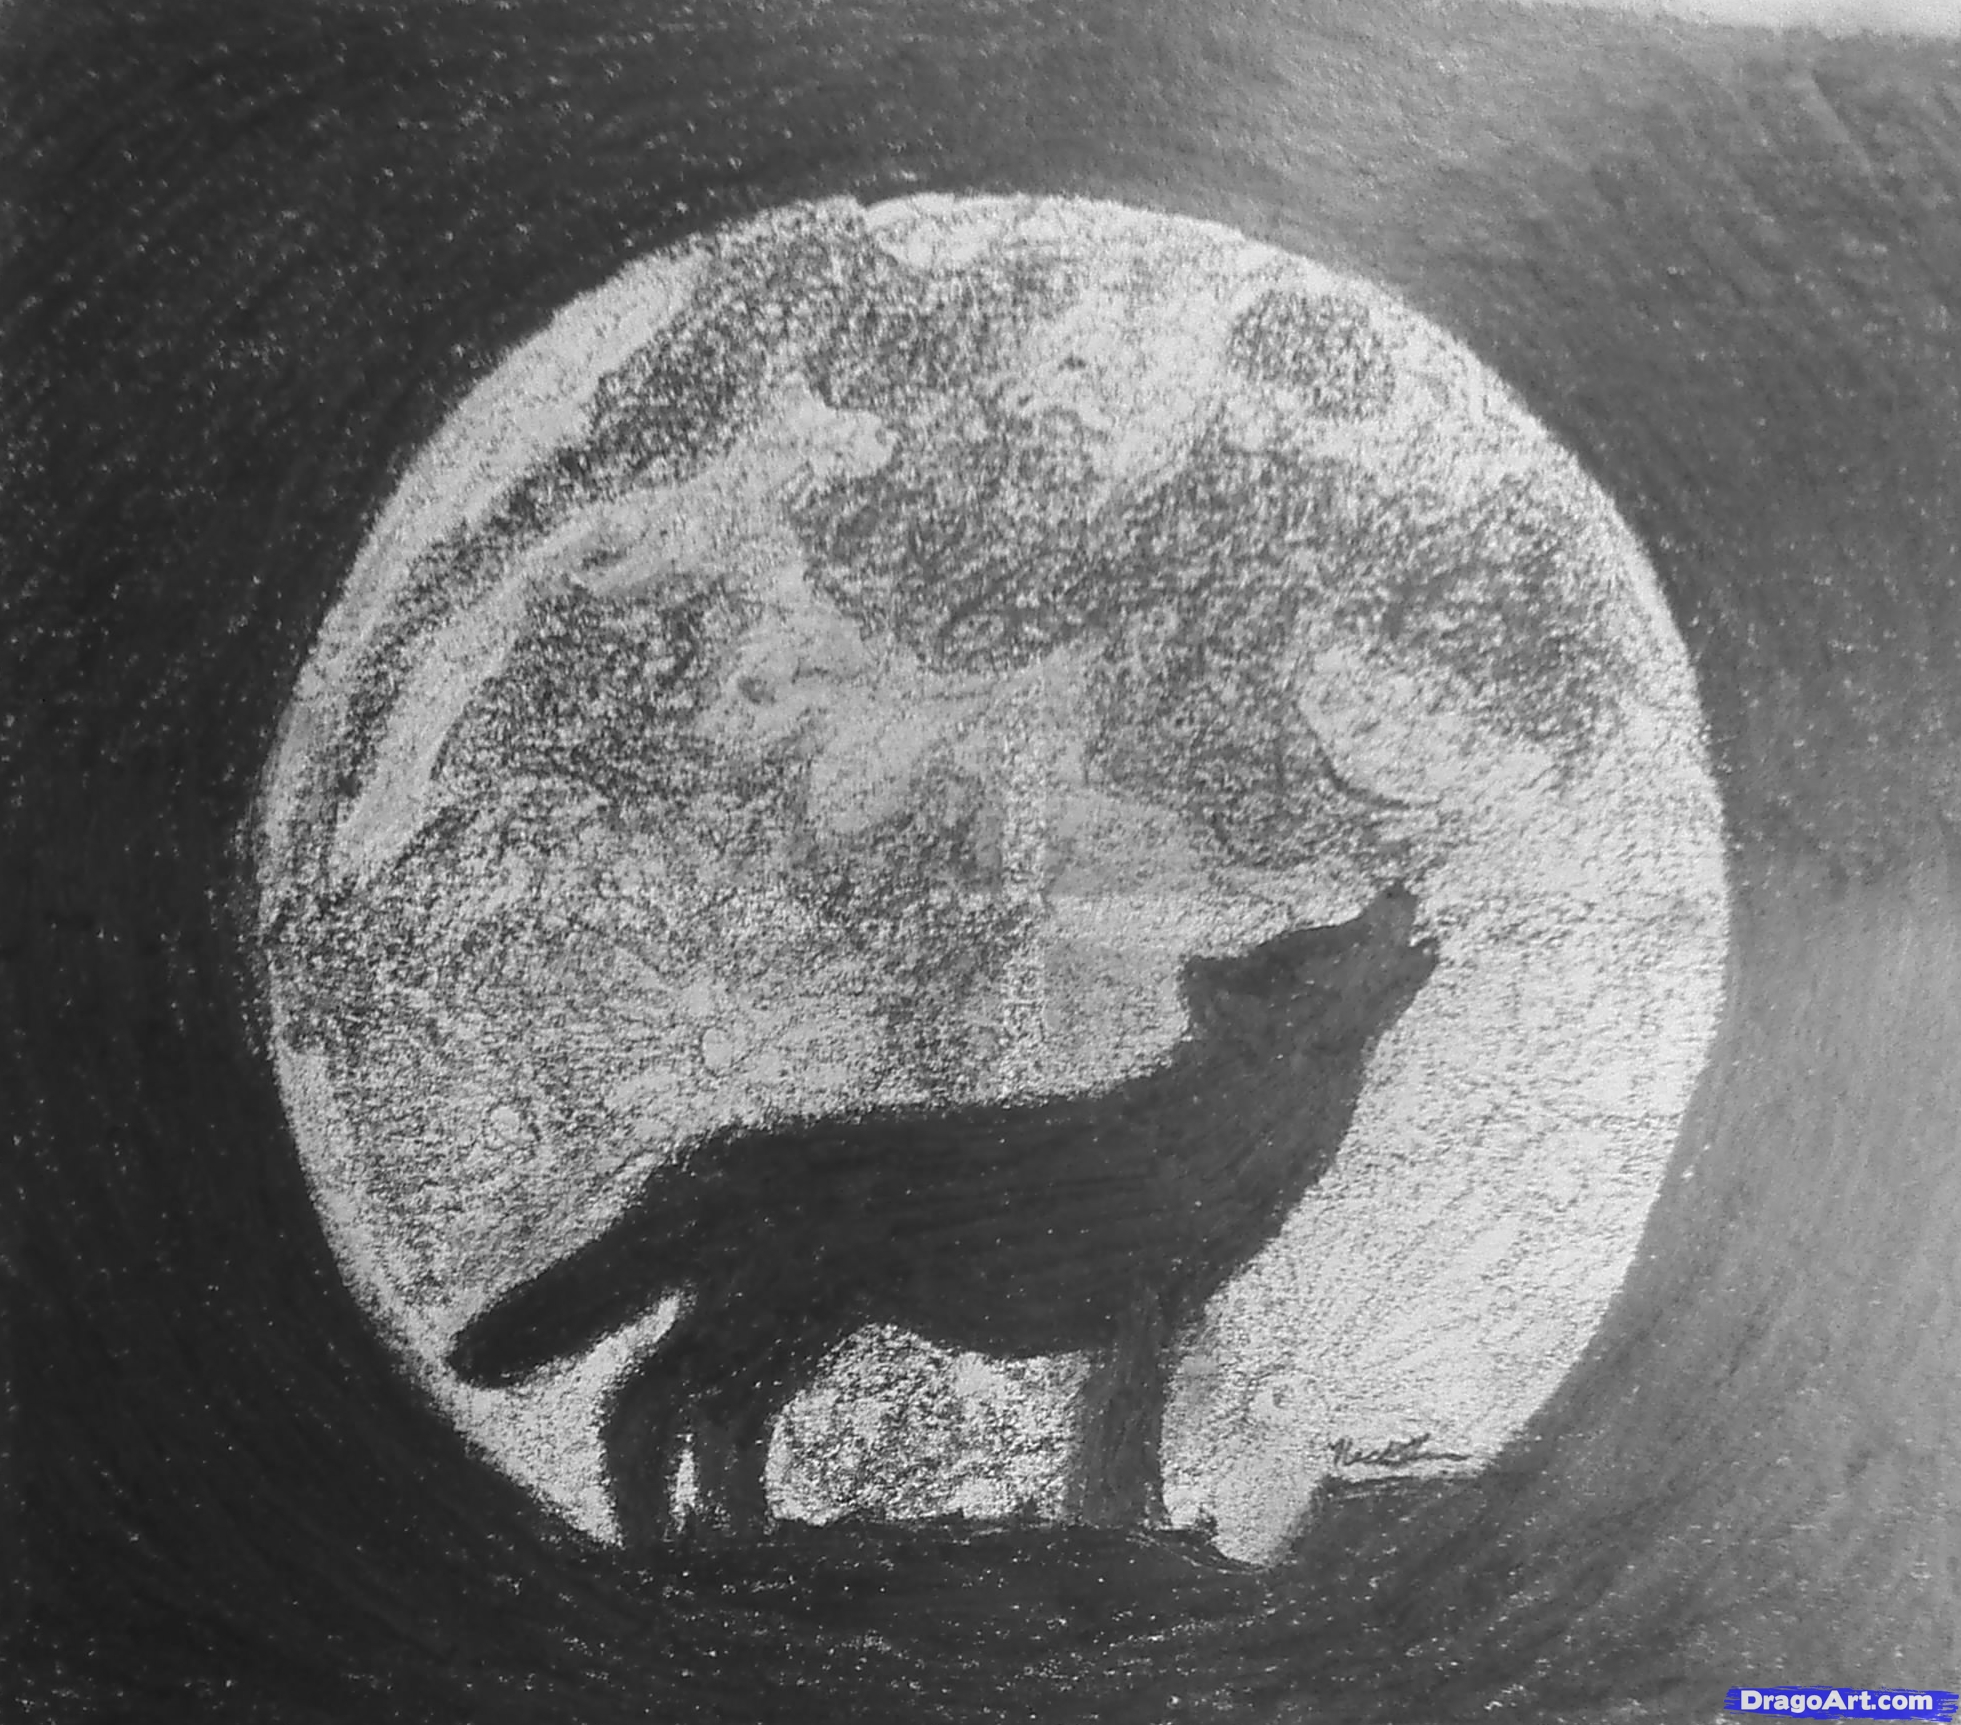 learn how to draw a wolf howling, forest animals, animals, free step